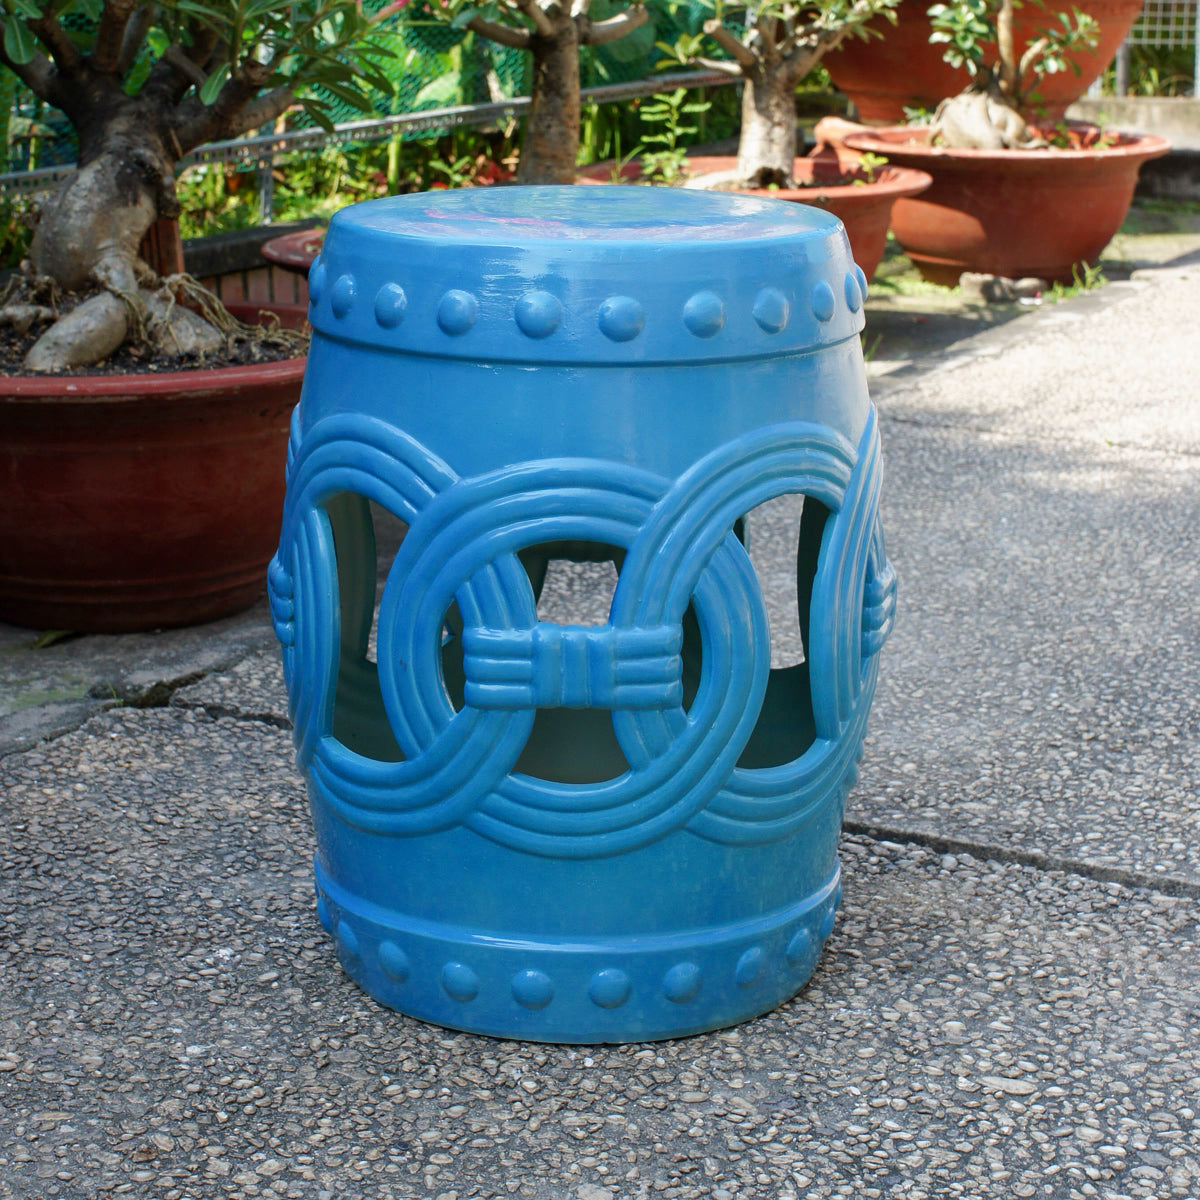 Infinity Chain Garden Stool Blue by International Caravan - Swing Chairs Direct